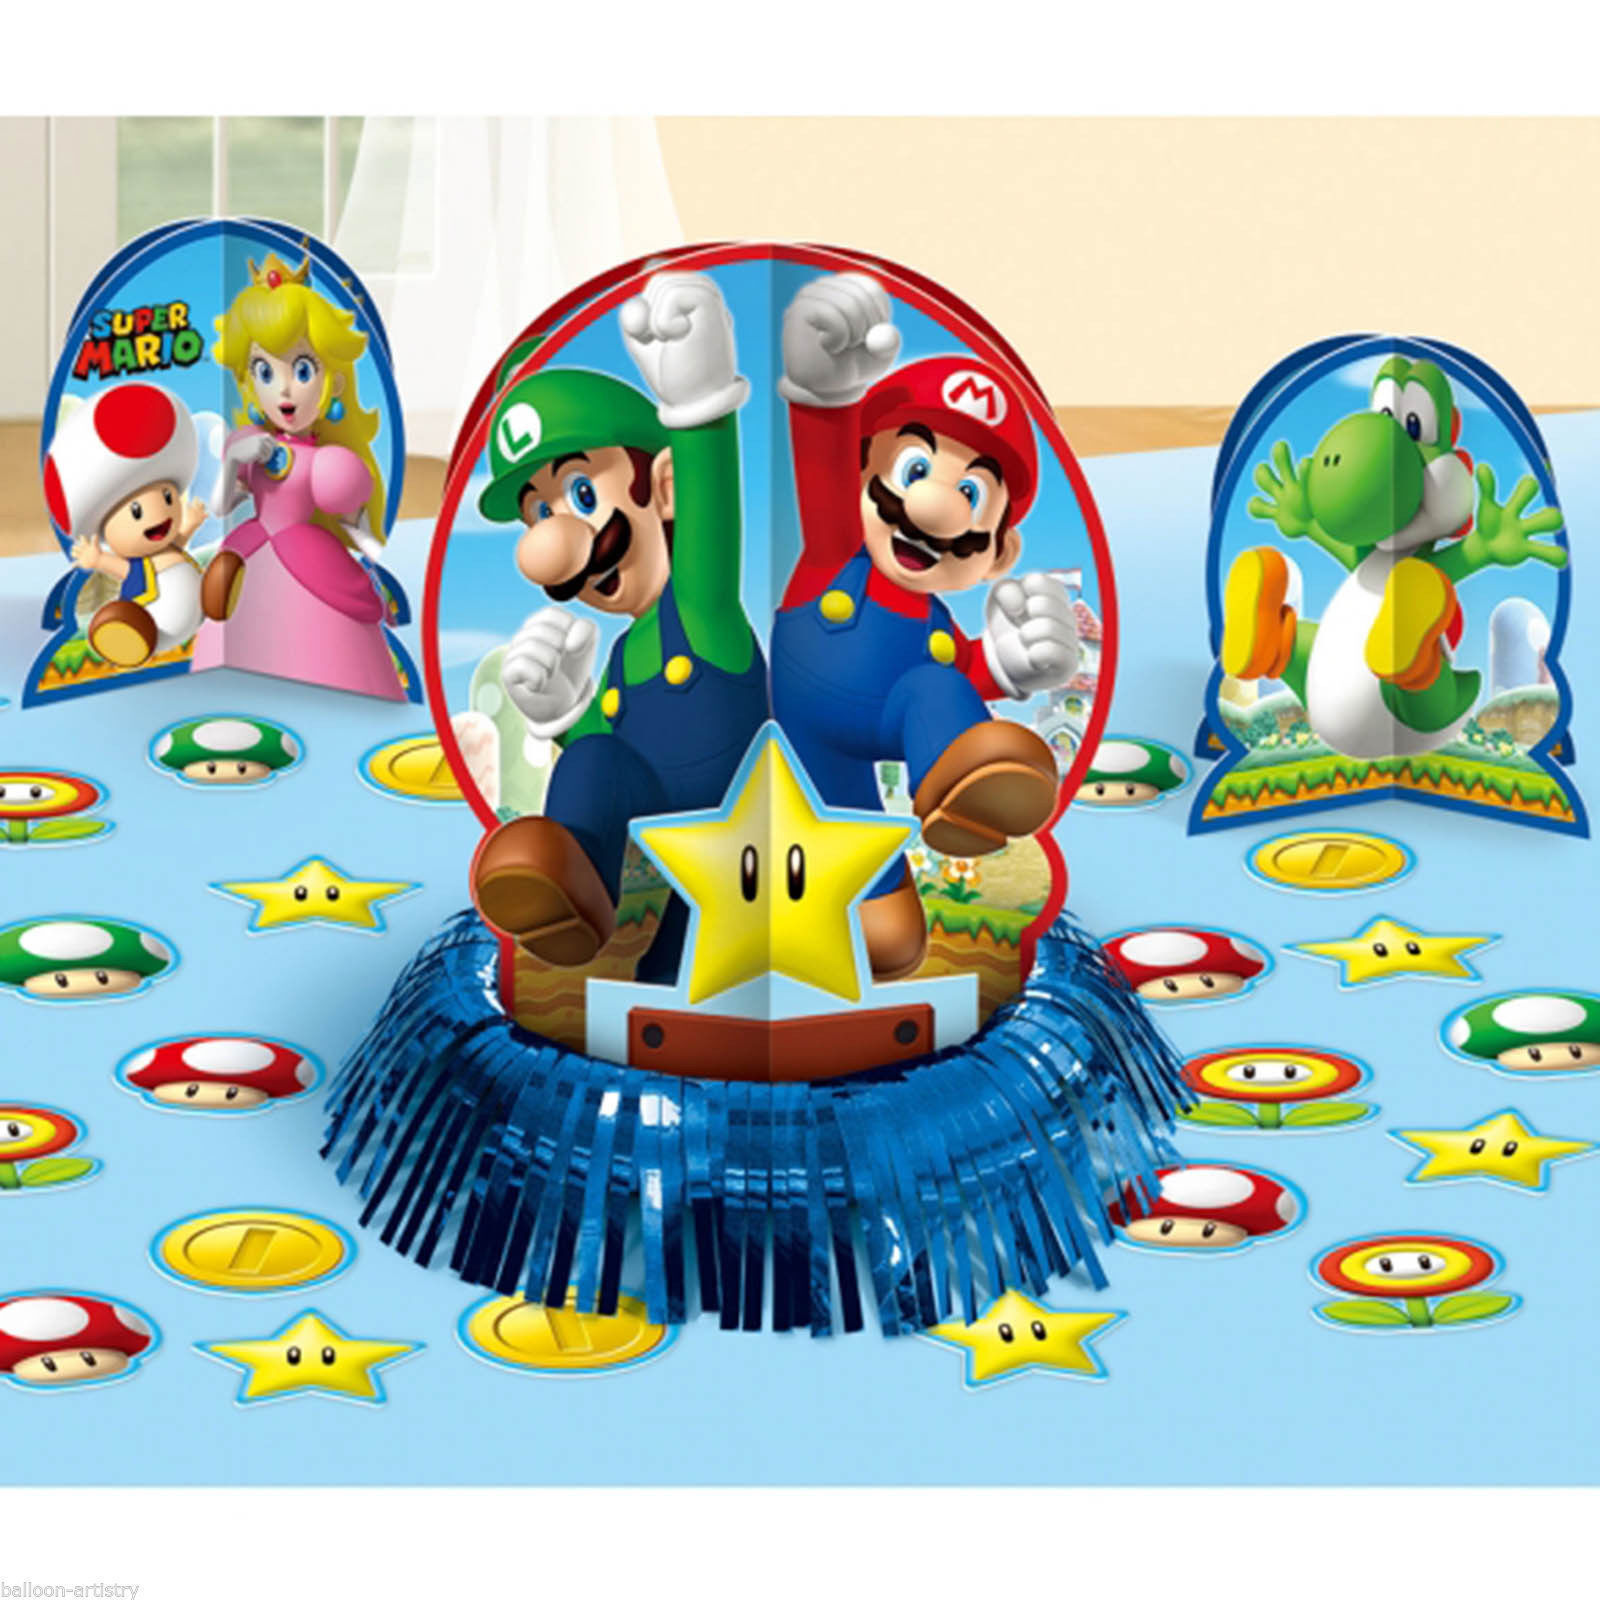 Details About Super Mario Brothers Table Decoration Kit Birthday Party Favor Supplies 23pc